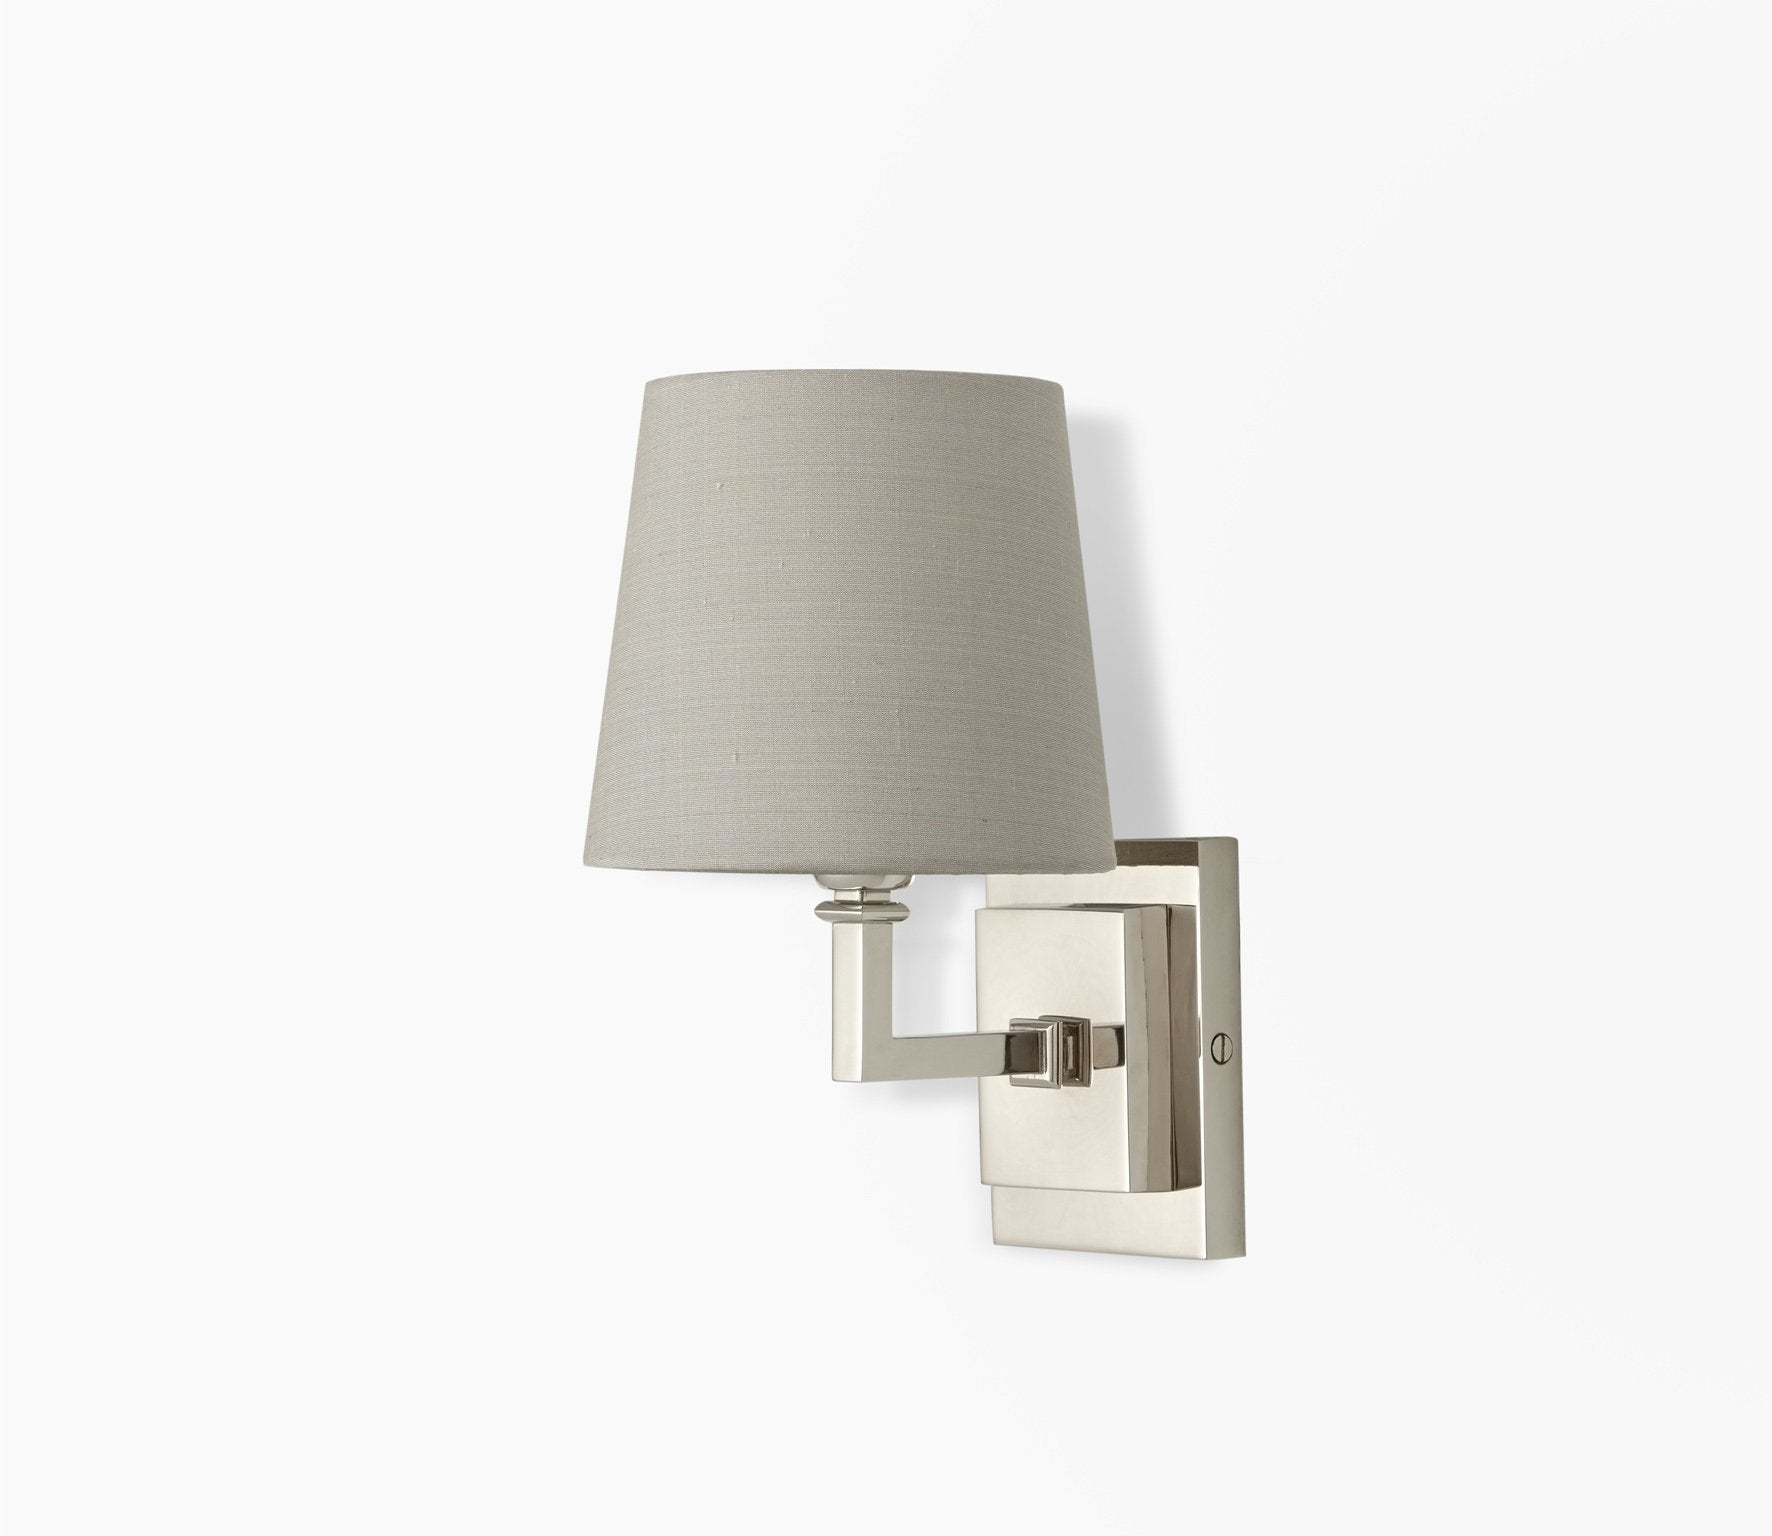 Parker Wall Light with Drum Shade Product Image 7